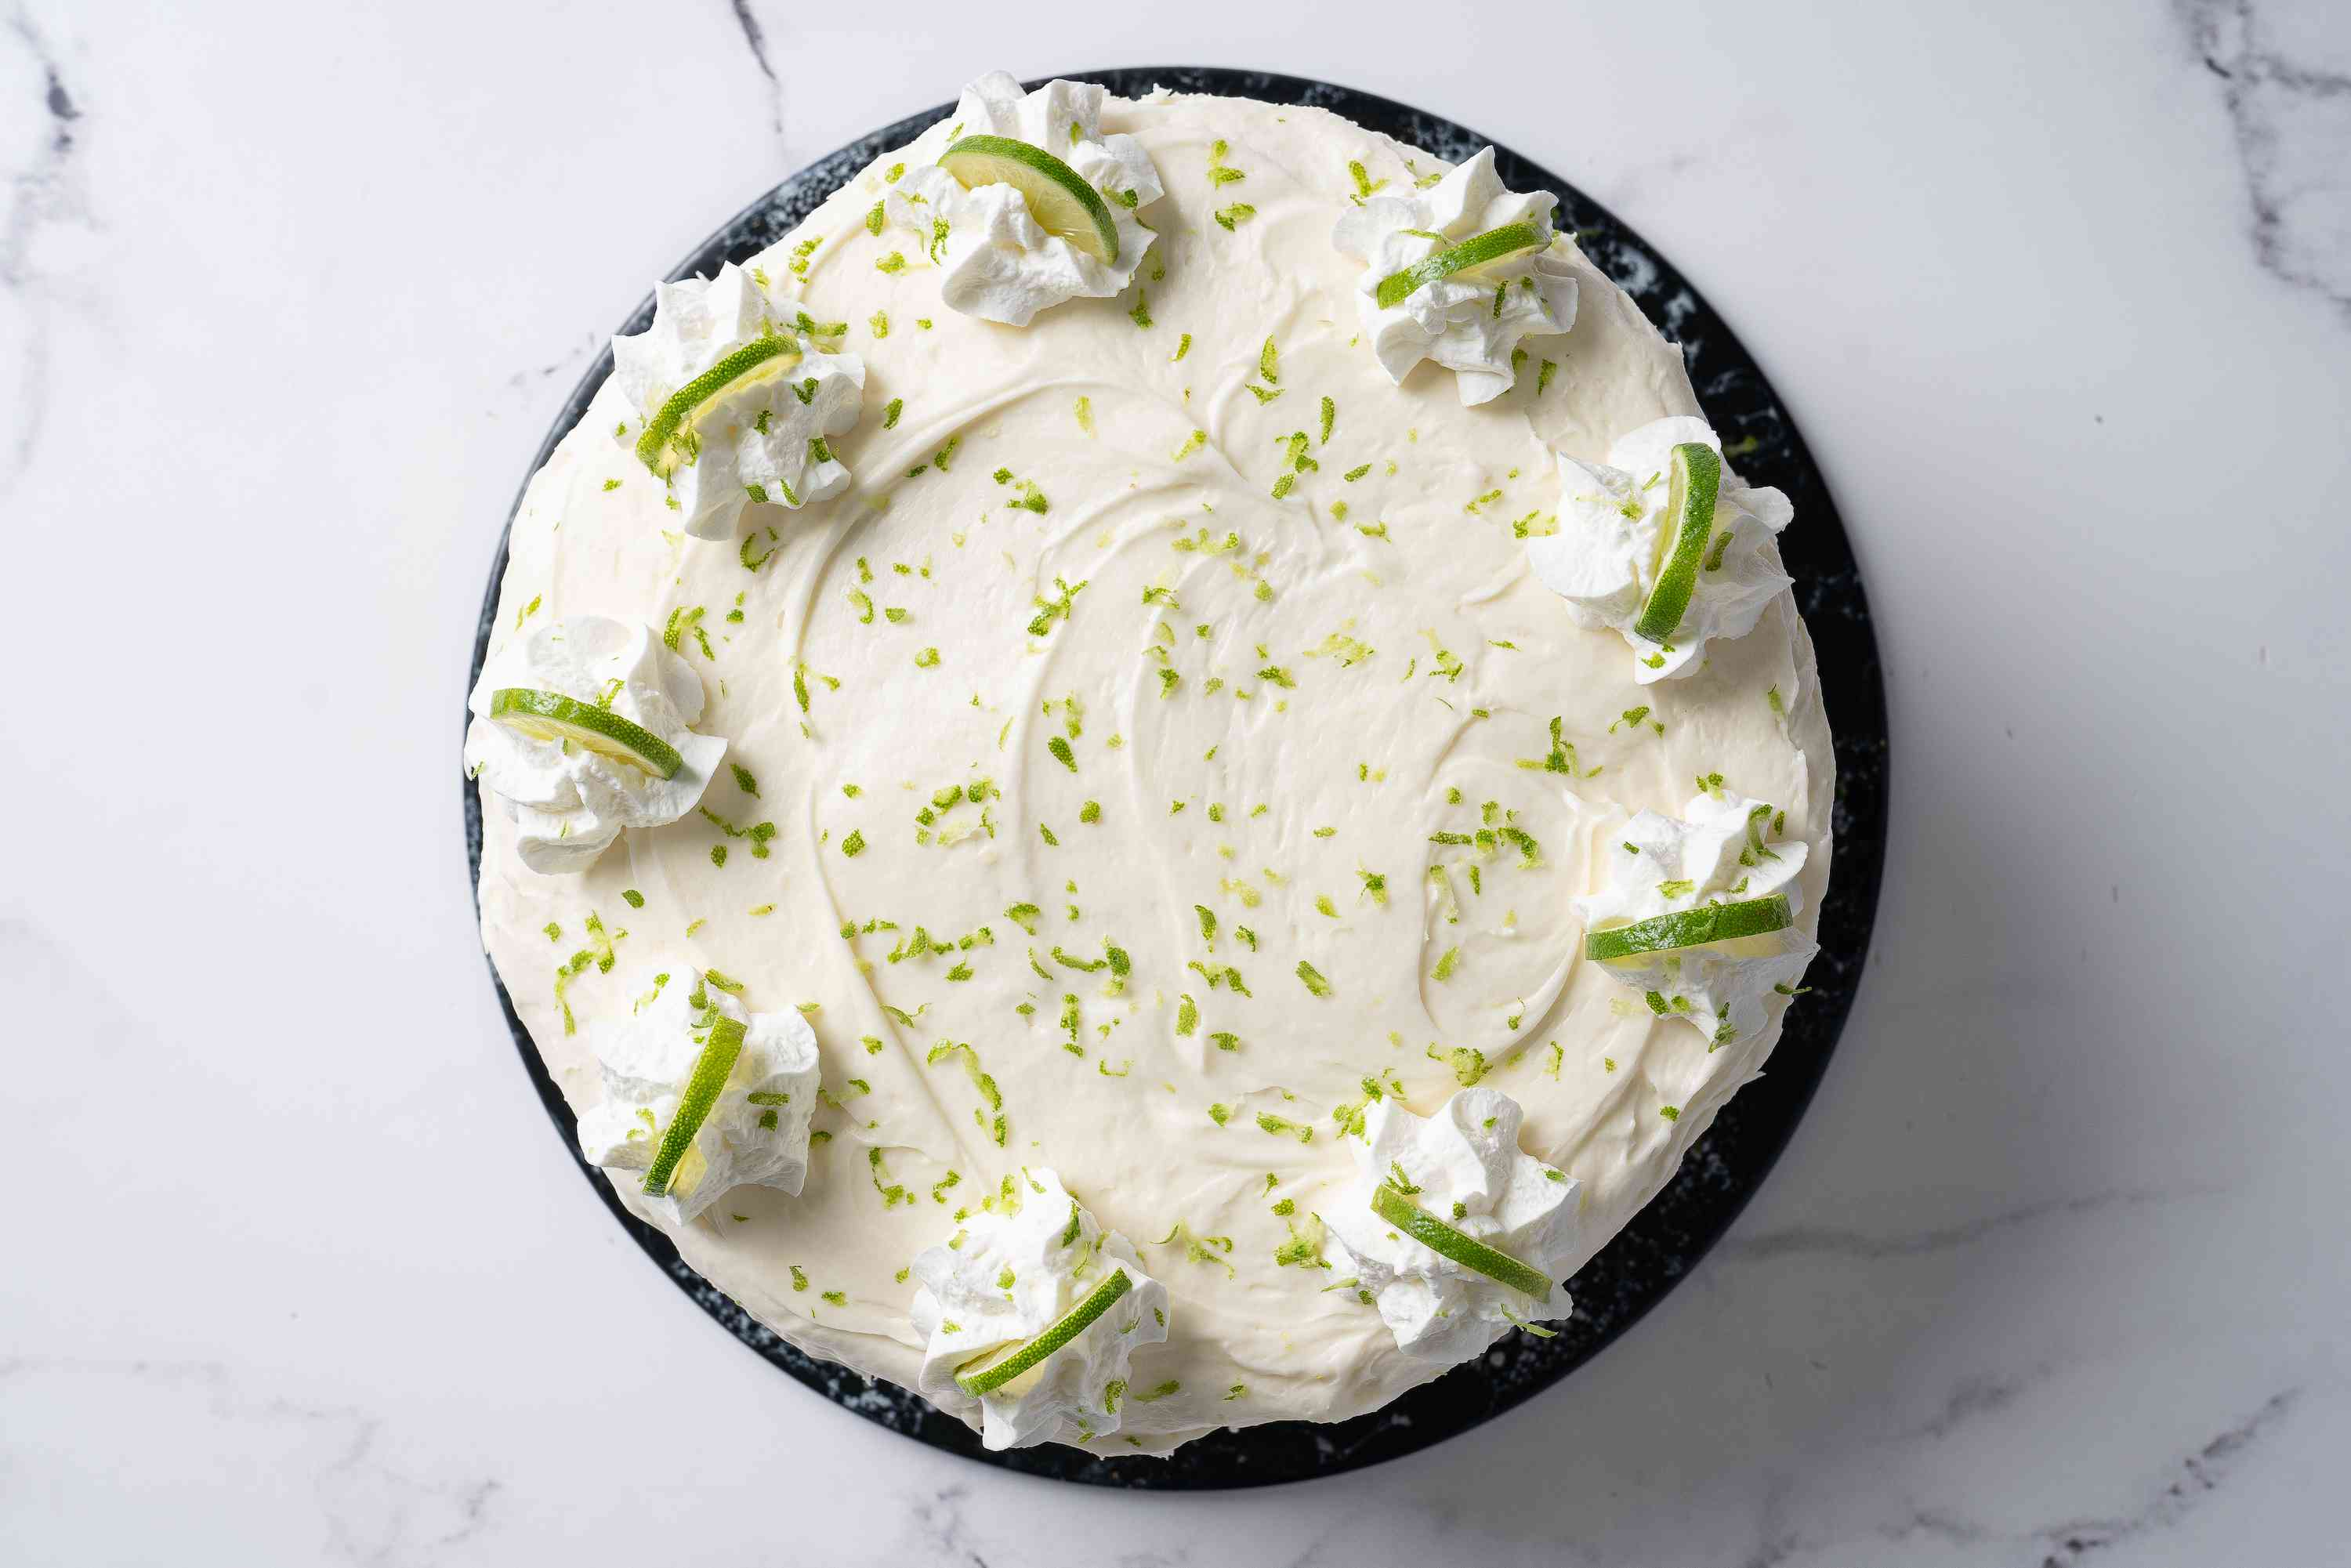 Garnish Key Lime Cake with zest and slices